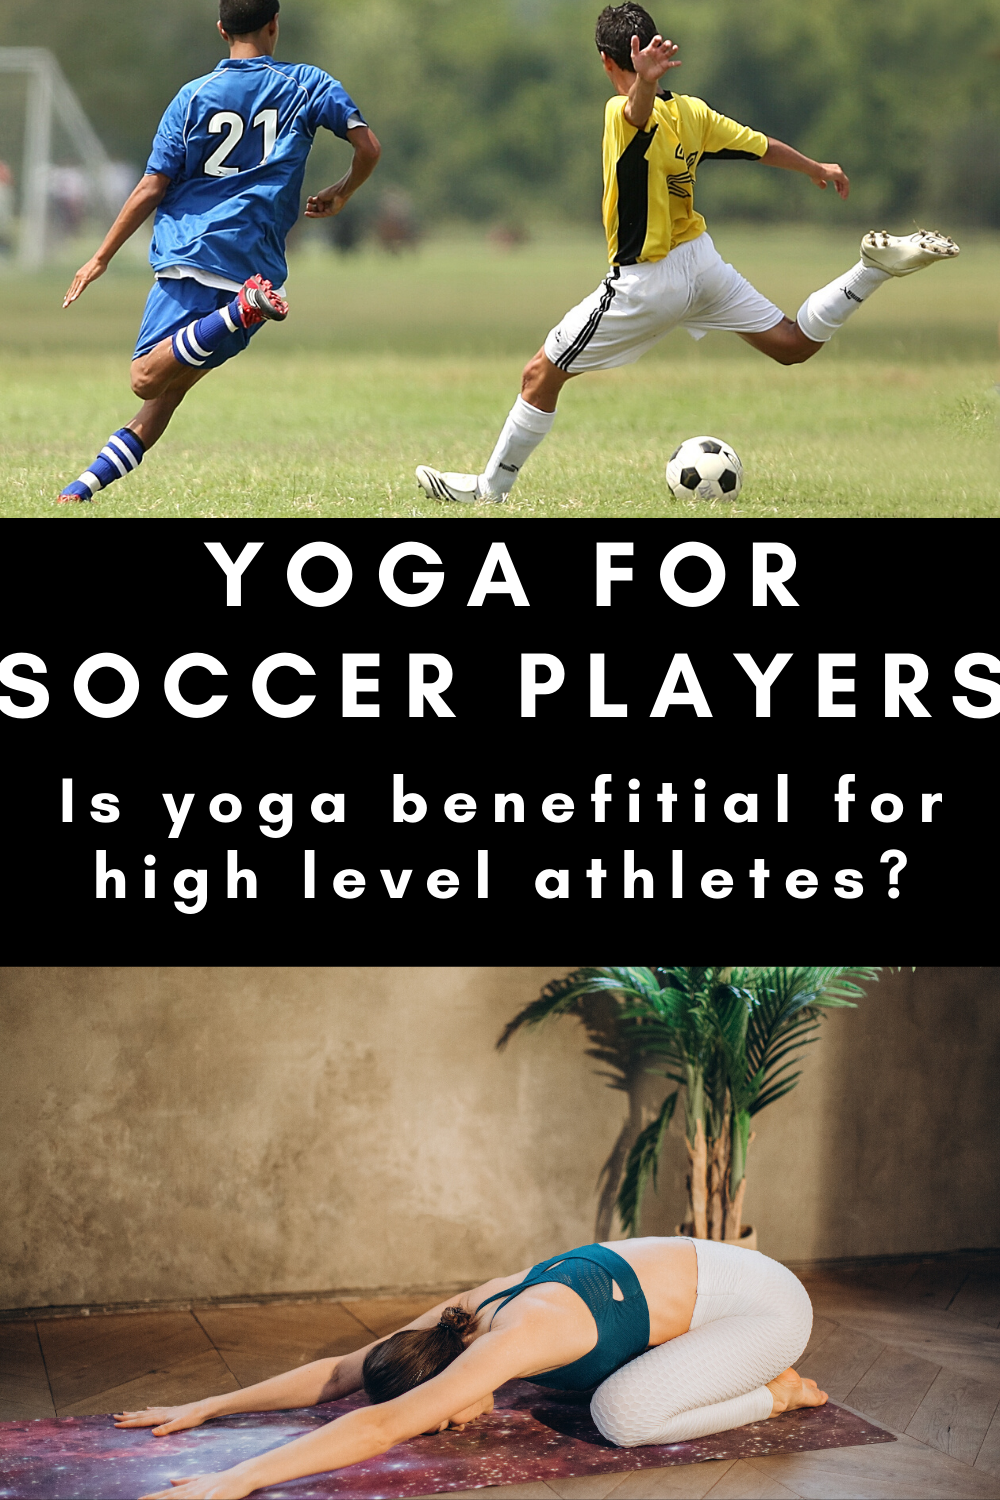 Is Yoga Good For Professional Athletes And Soccer Players In 2020 Soccer Players Soccer Players